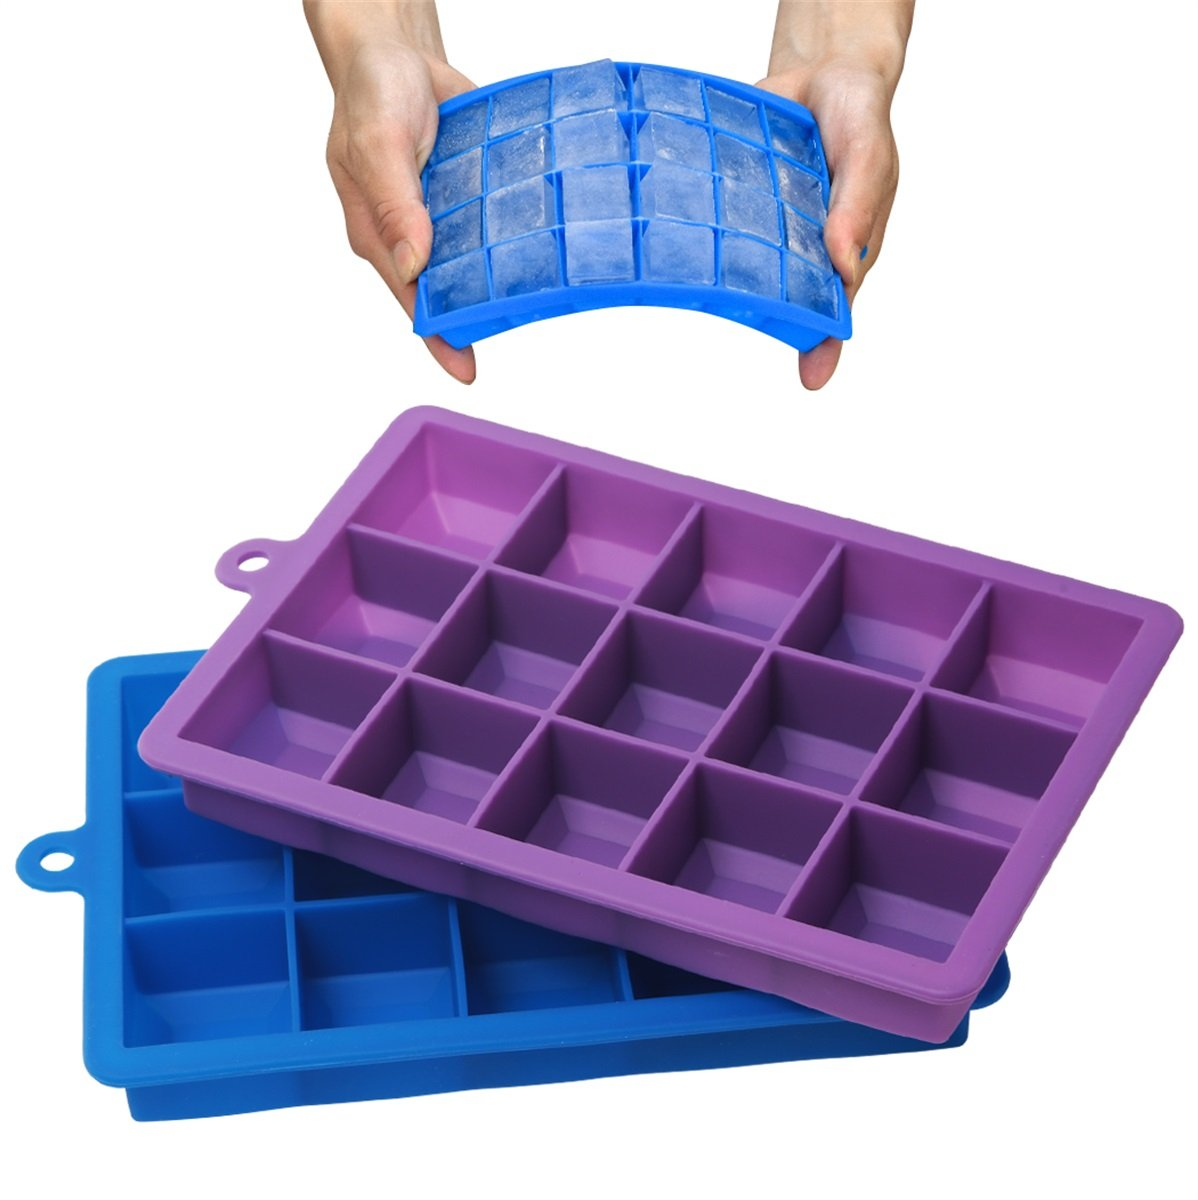 Stephenie Ice Cube Trays with Lid - 2 Pack - 15 Cavities 1-2/5 inch Medium Square Ice Cube Molds ( 30 Cubes Total ) - BPA free - Easy To Release